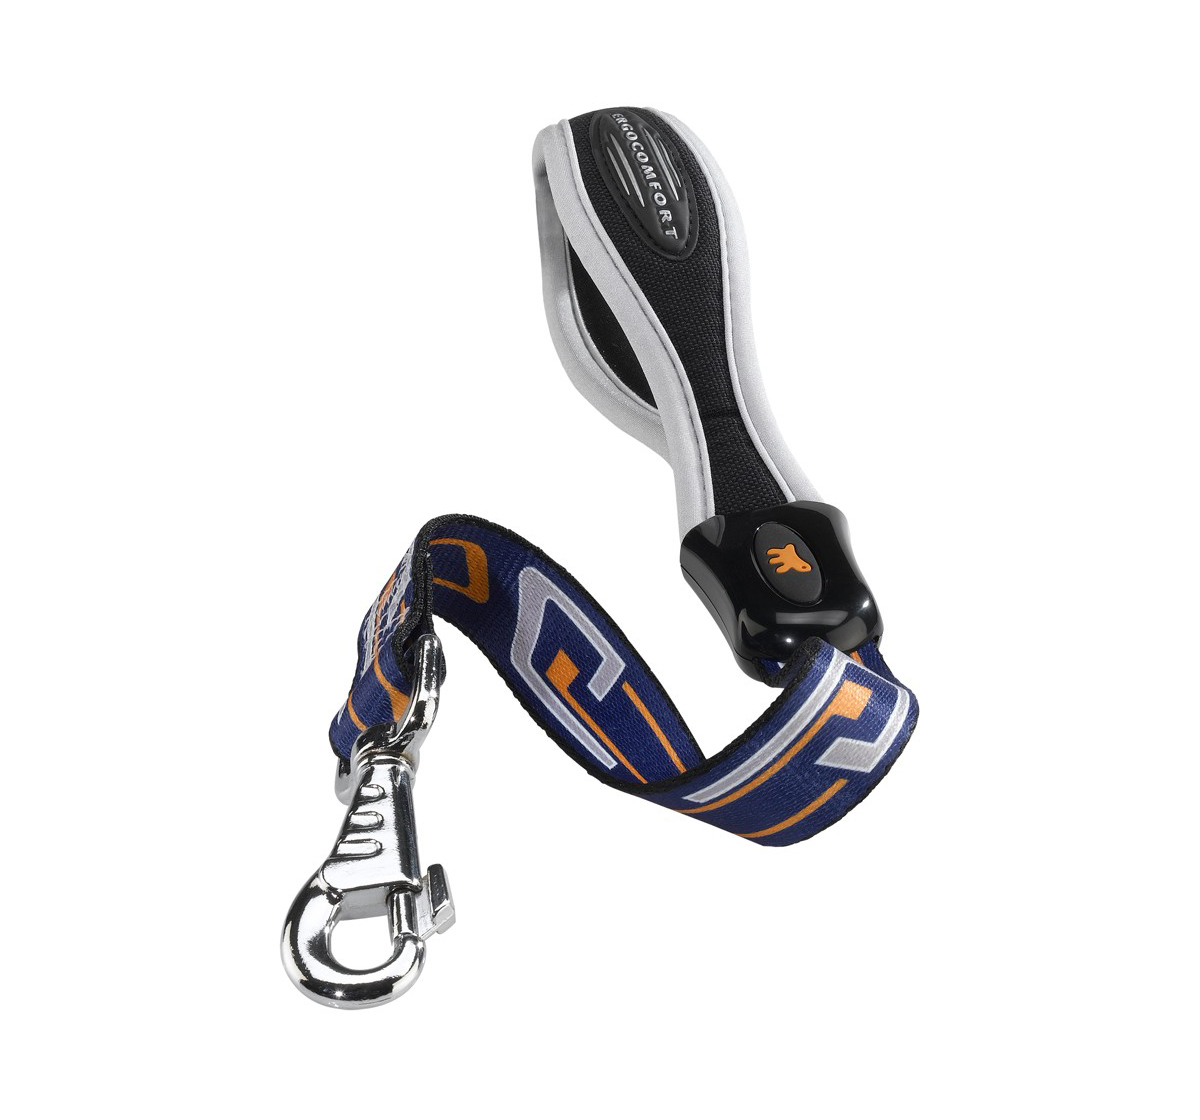 Ferplast Ergocomfort Tattoo Leash For Large Dog With Short Length - 21 inch - Blue